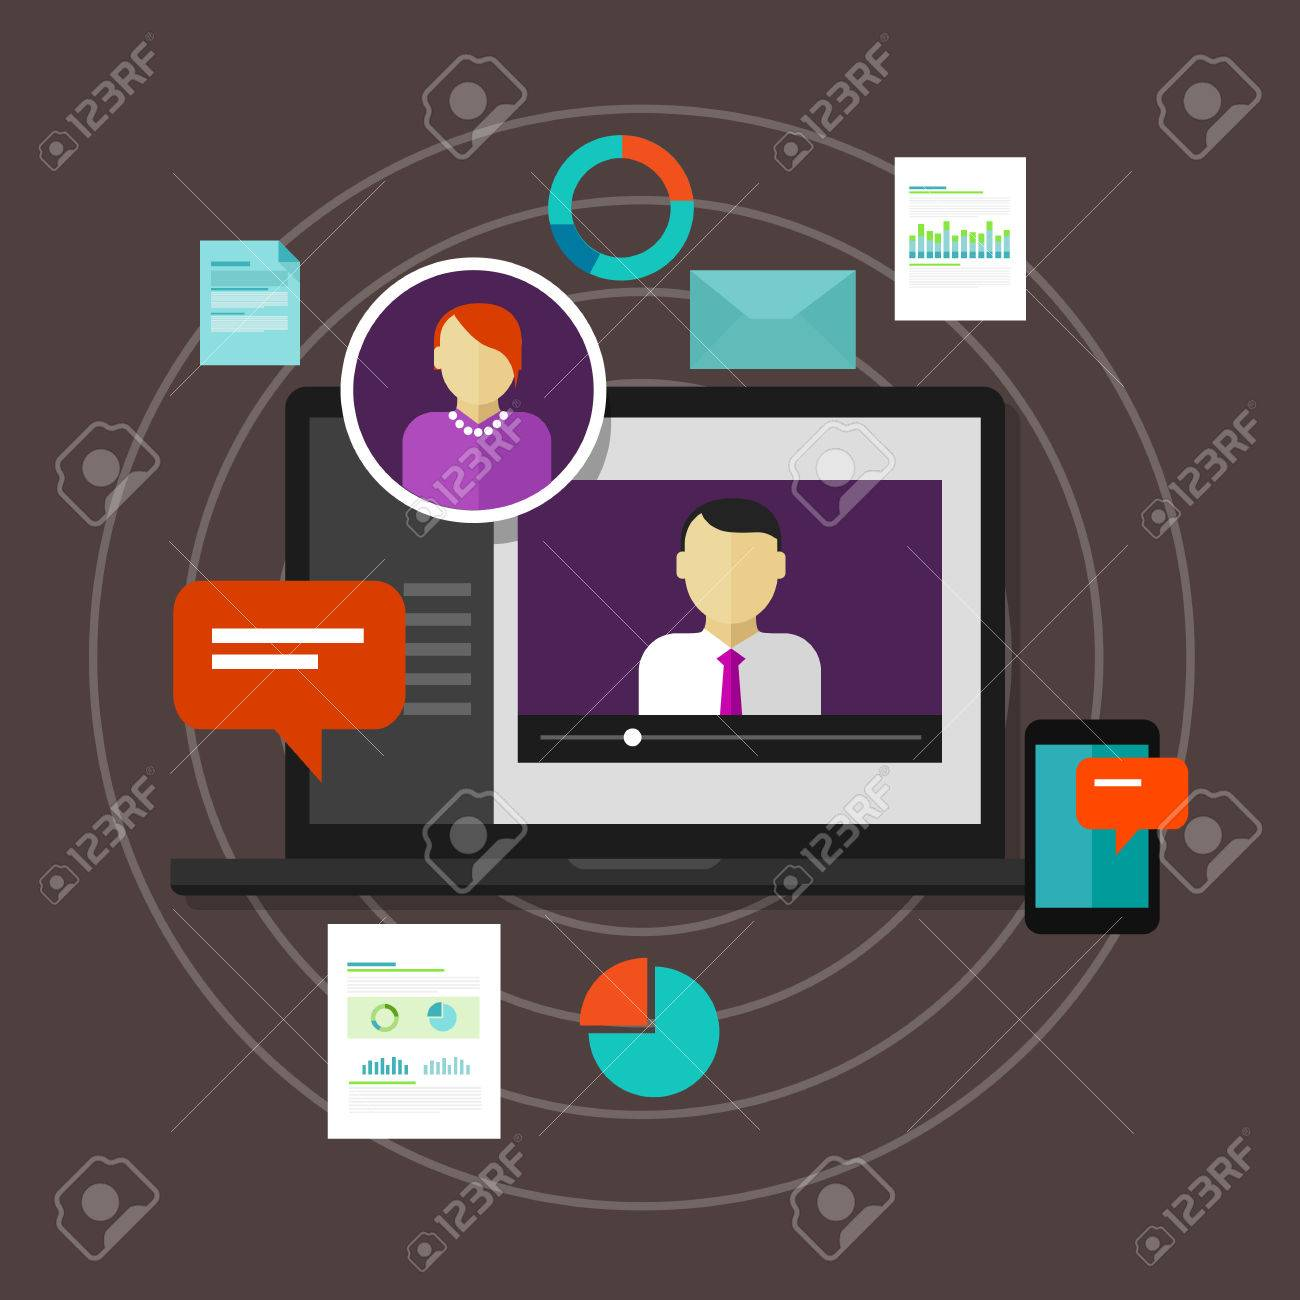 Webinar Online Training Education Concept Vector Distance Learning Royalty Free Cliparts Vectors And Stock Illustration Image 46569339